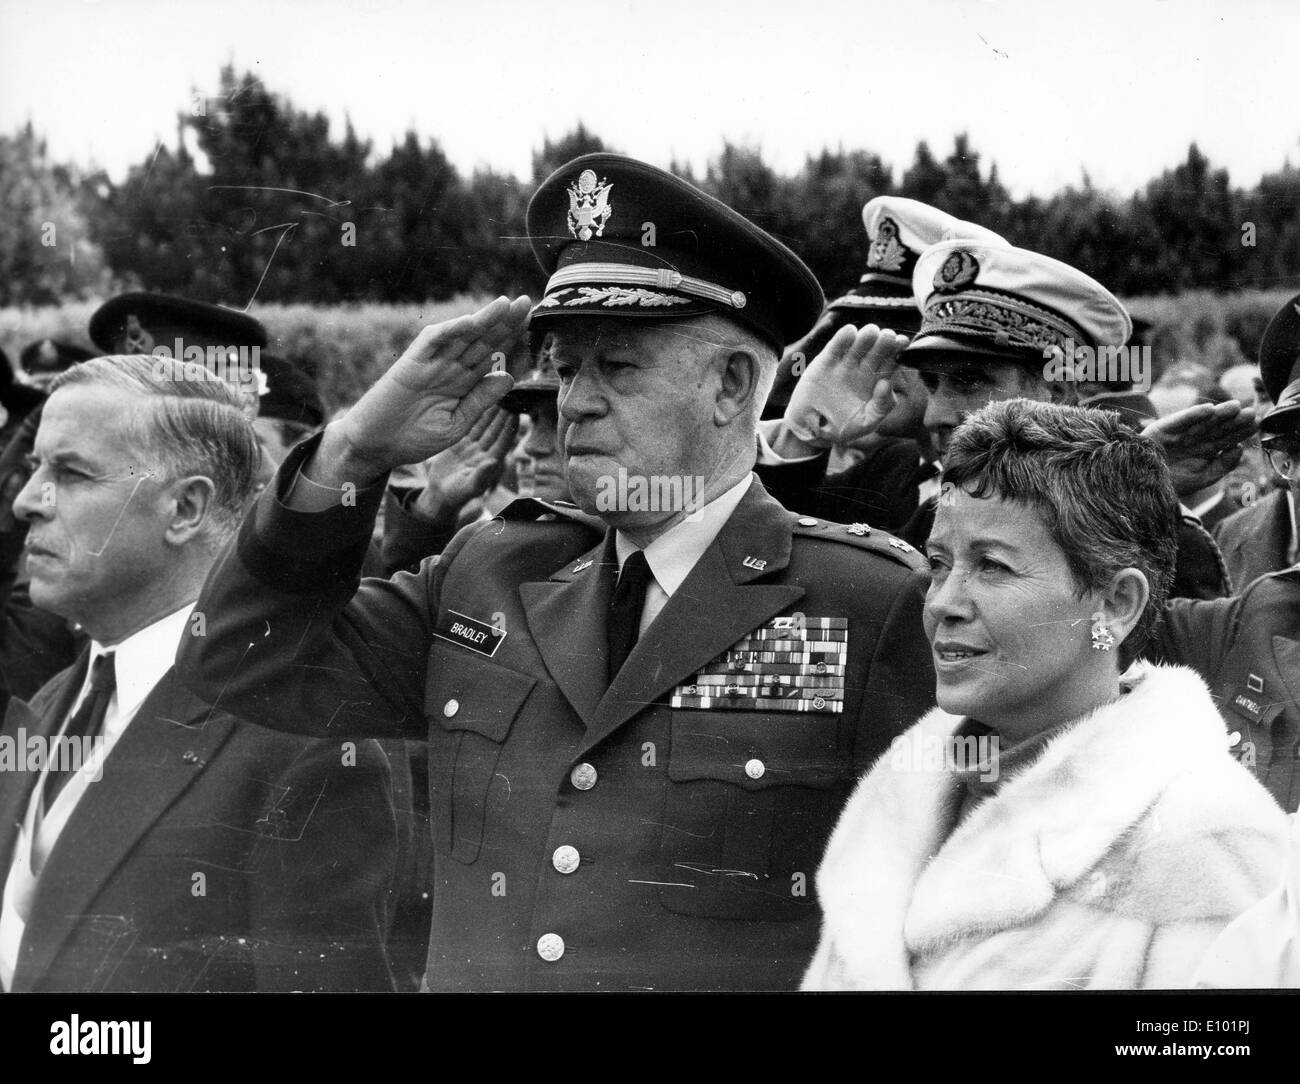 OMAR BRADLEY General of the Army, one of the main U.S. Army field commanders in North Africa and Europe during World War II - Stock Image